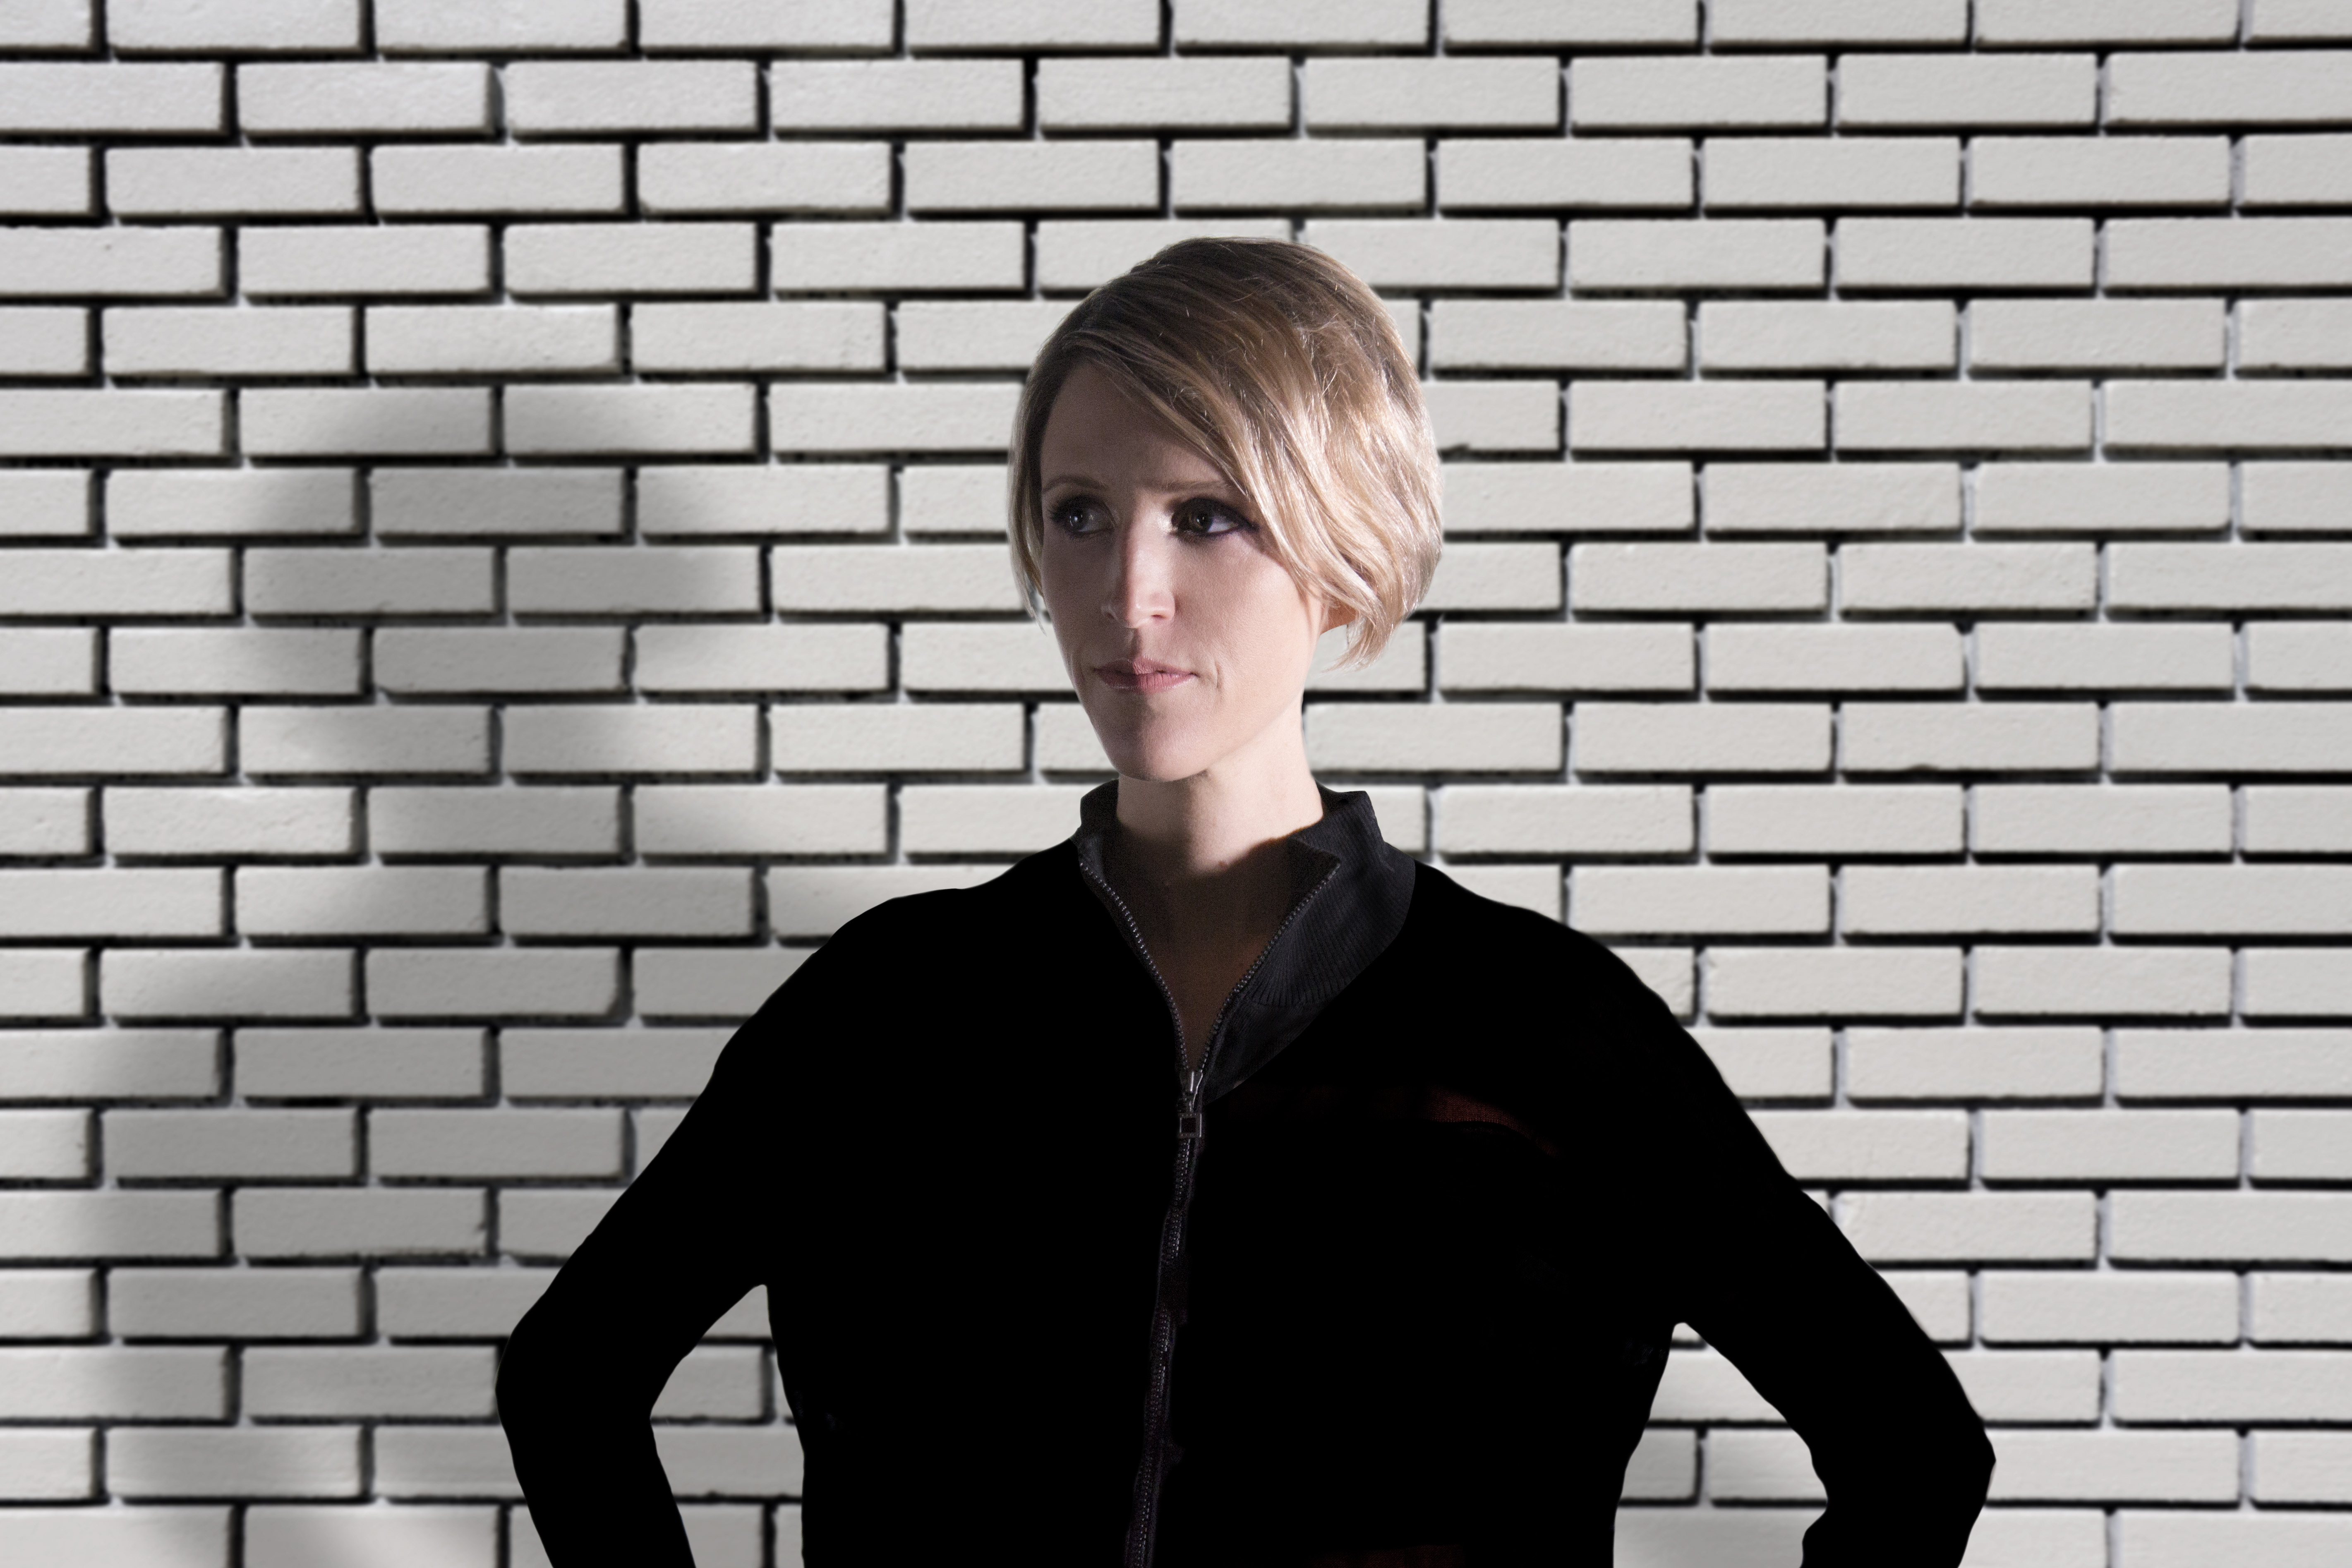 Chicago born producer, composer, pianist, and DJ Kate Simko is bringing her genre-bending project London Electronic Orchestra to one of London's most iconic live music venues, The Jazz Cafe. The Rhapsody caught up with her ahead of the show, and you can get to know the musician behind the music here.